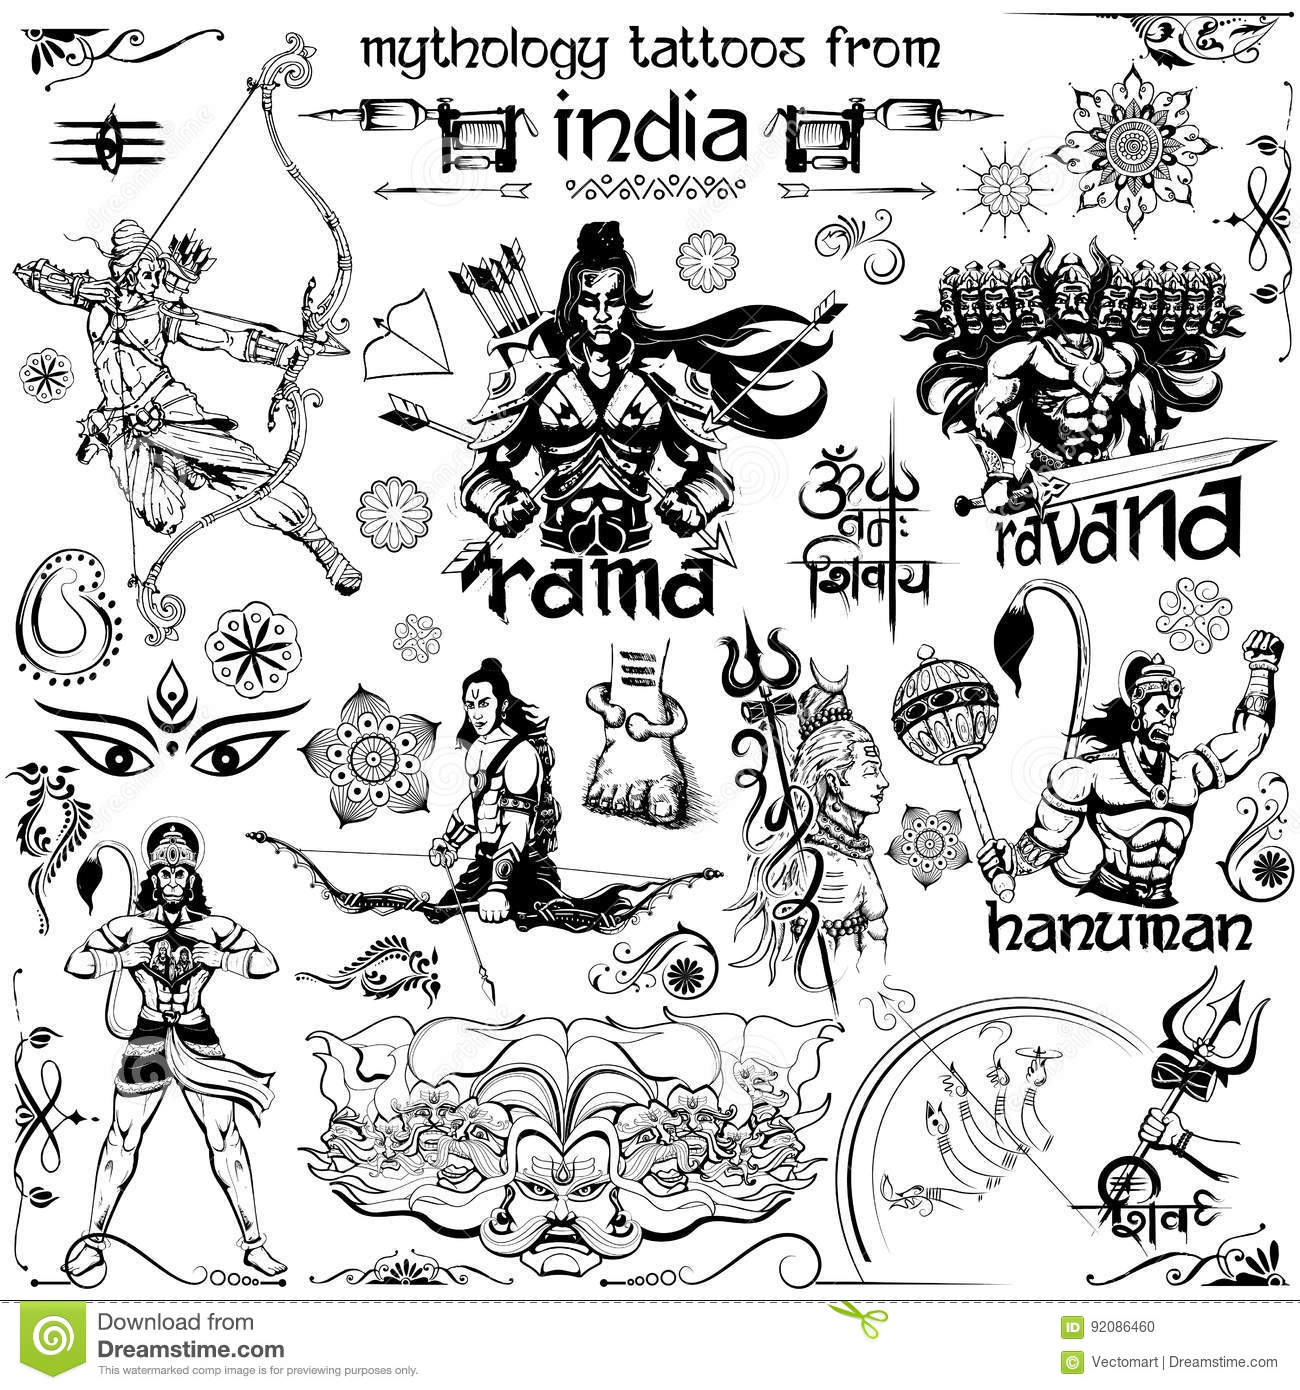 ramayan cartoons illustrations vector stock images 467 pictures to download from. Black Bedroom Furniture Sets. Home Design Ideas